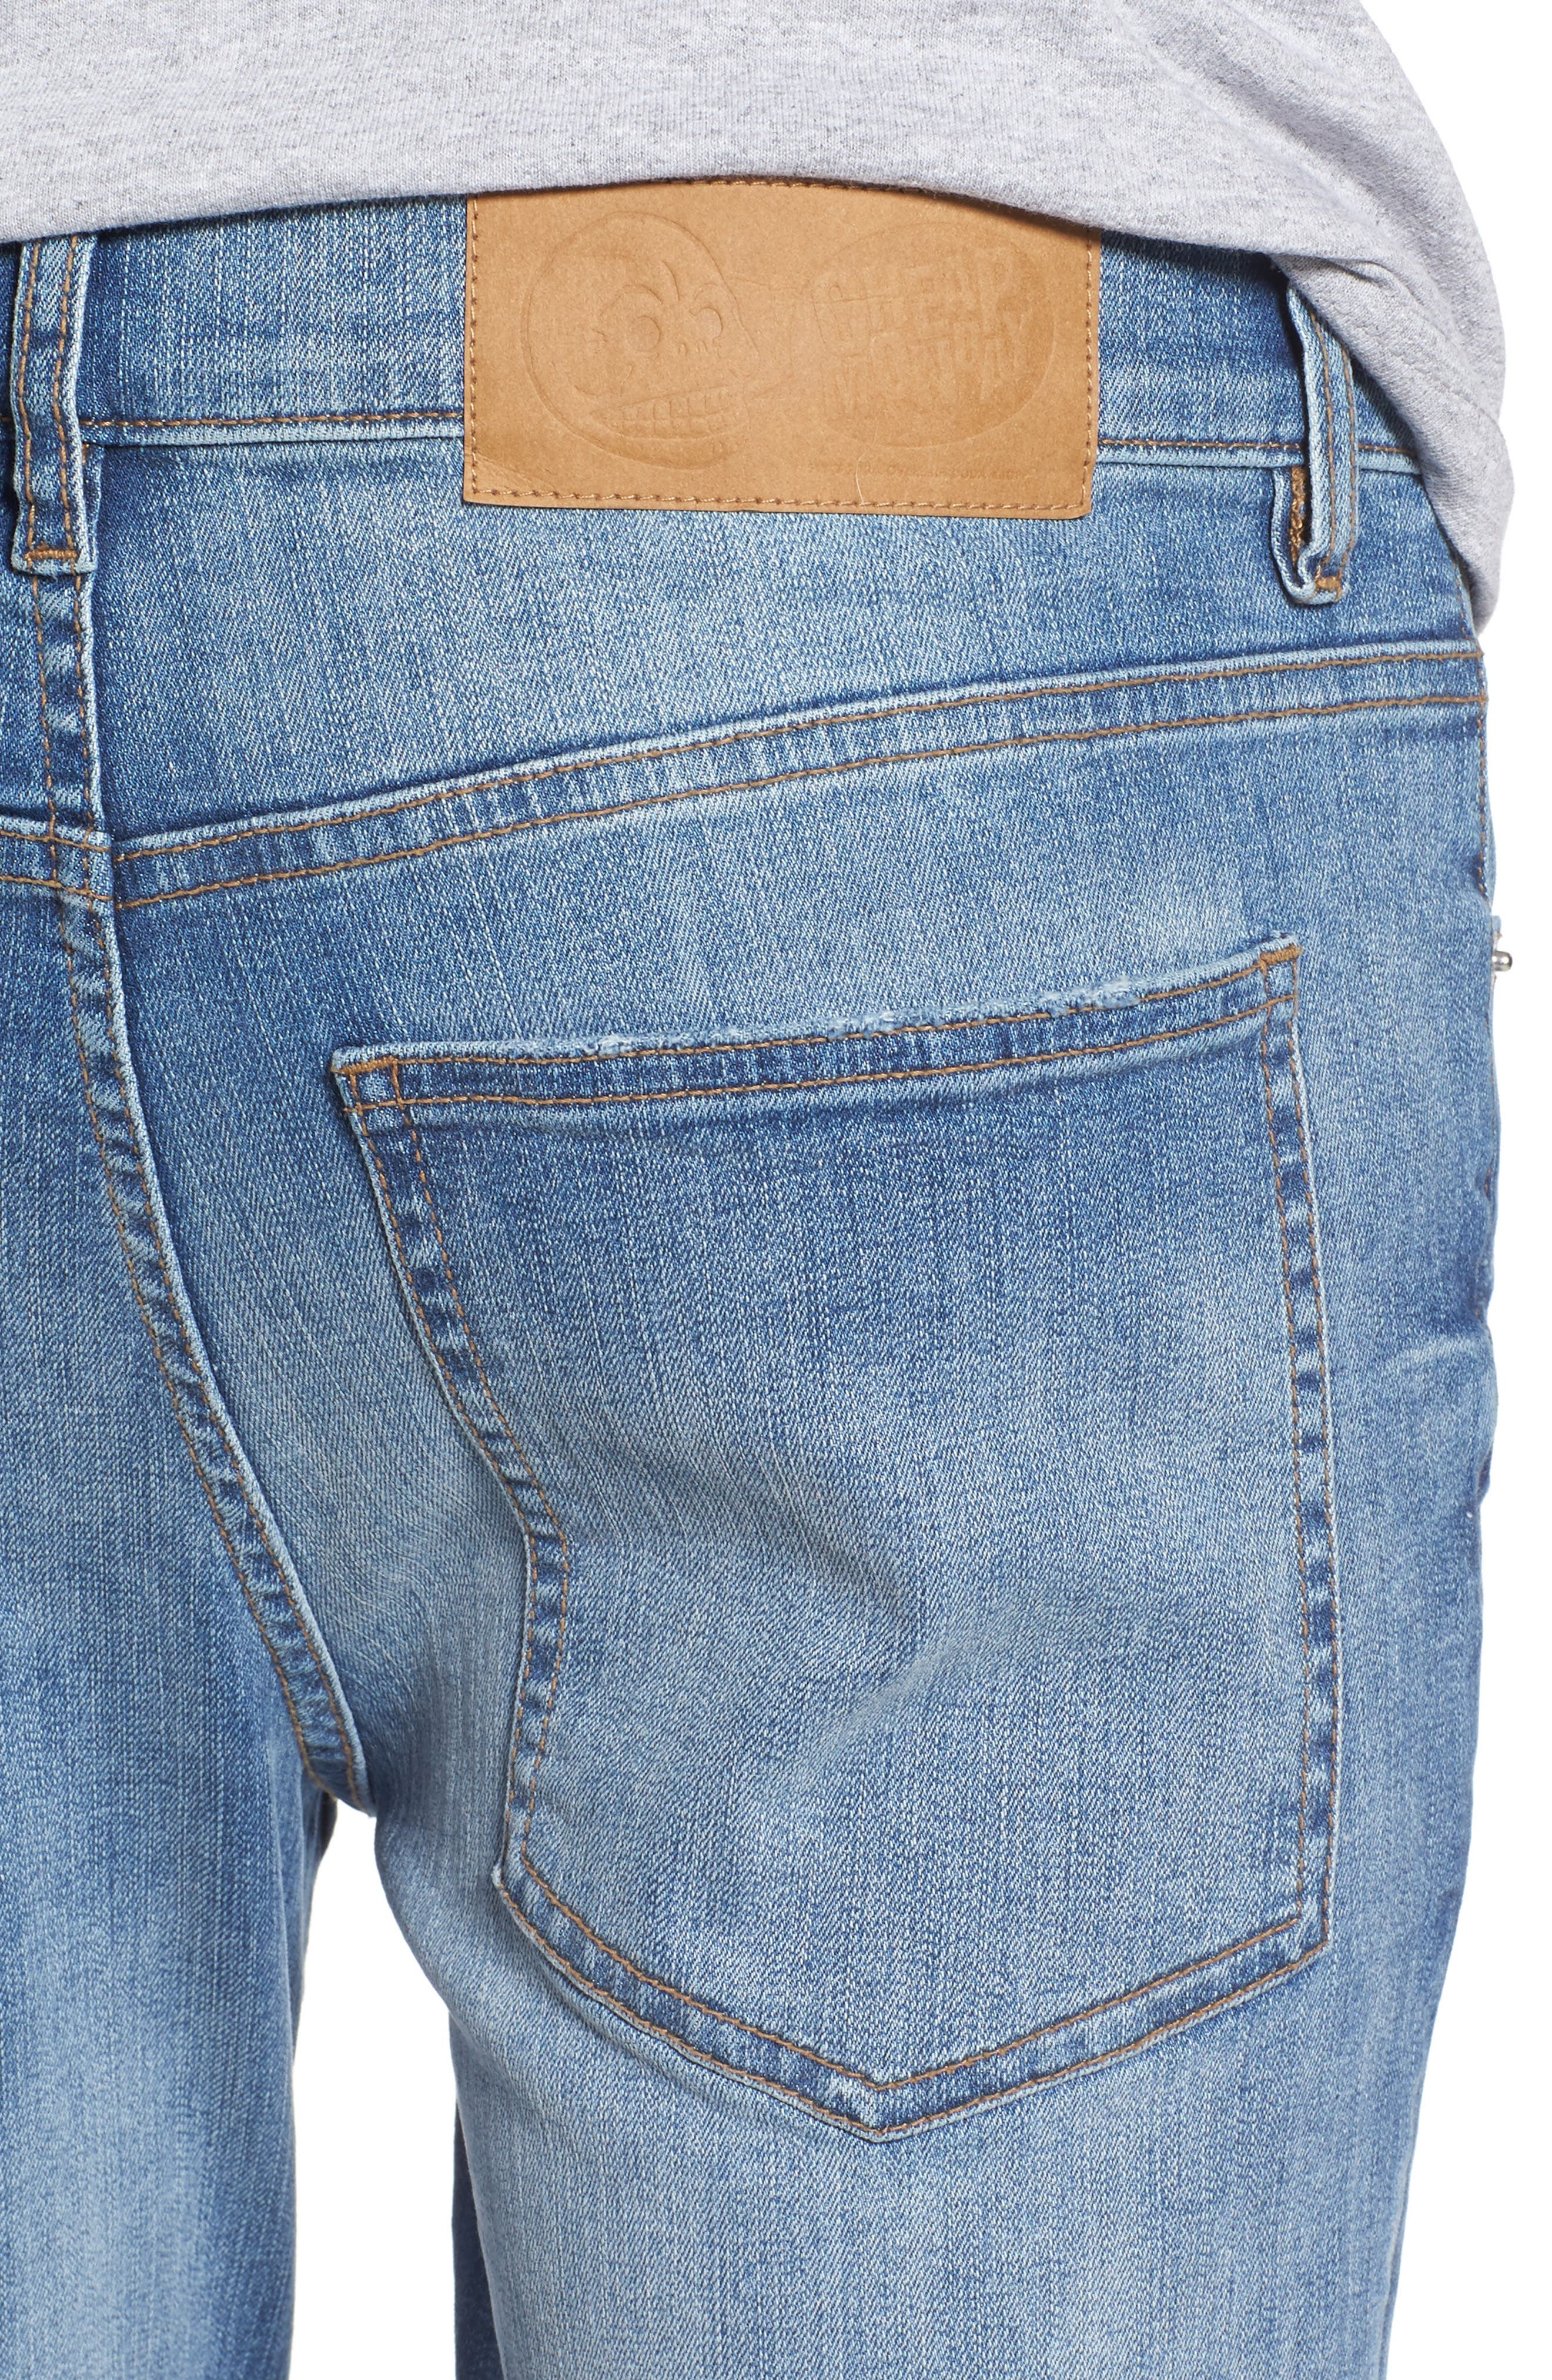 Tight Skinny Fit Jeans,                             Alternate thumbnail 4, color,                             428